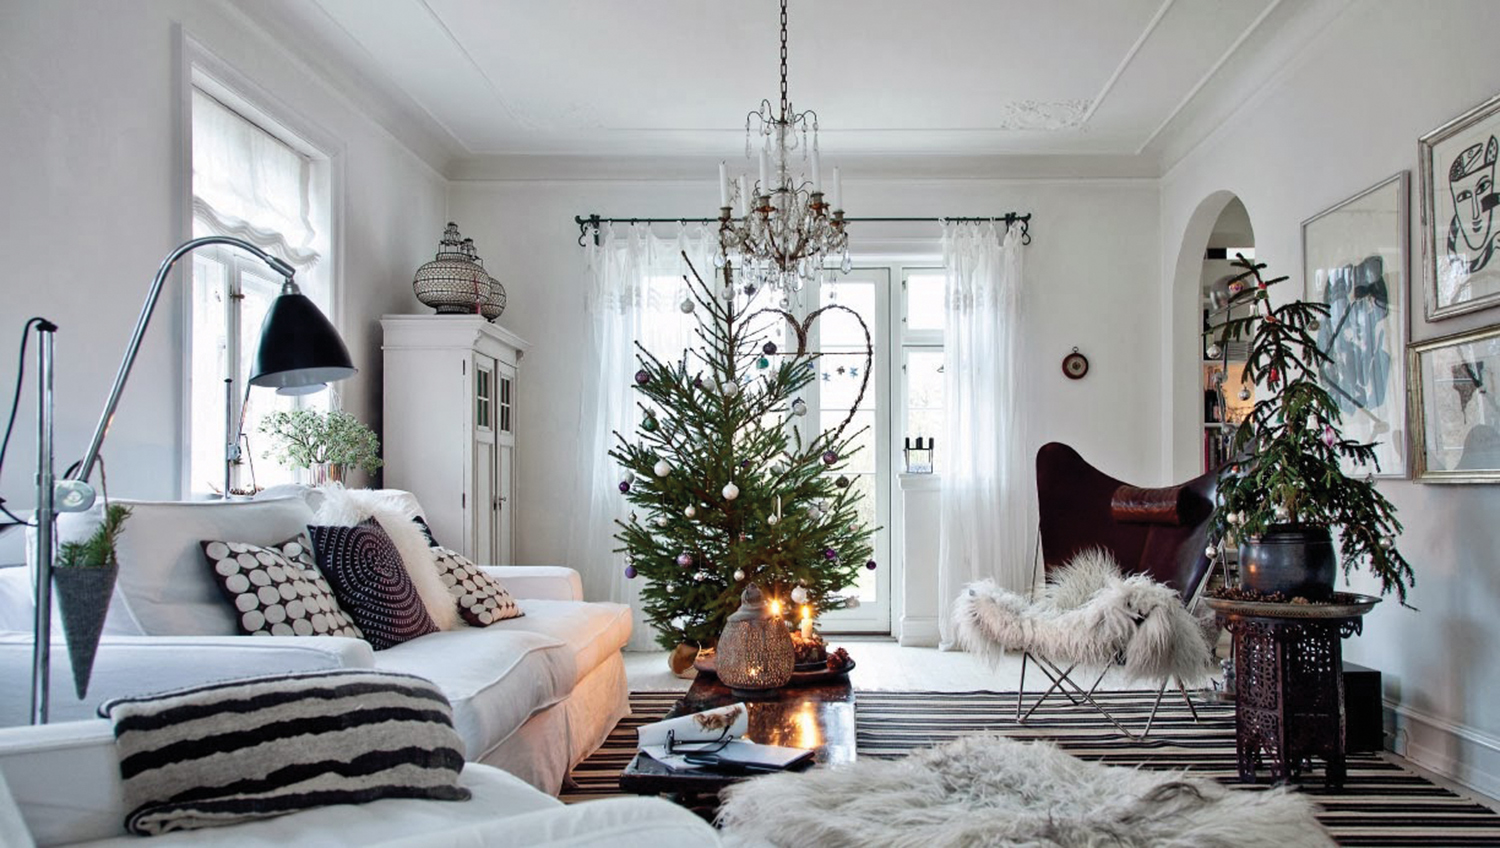 Creative christmas decor viva lifestyle magazine Christmas decorations interior design